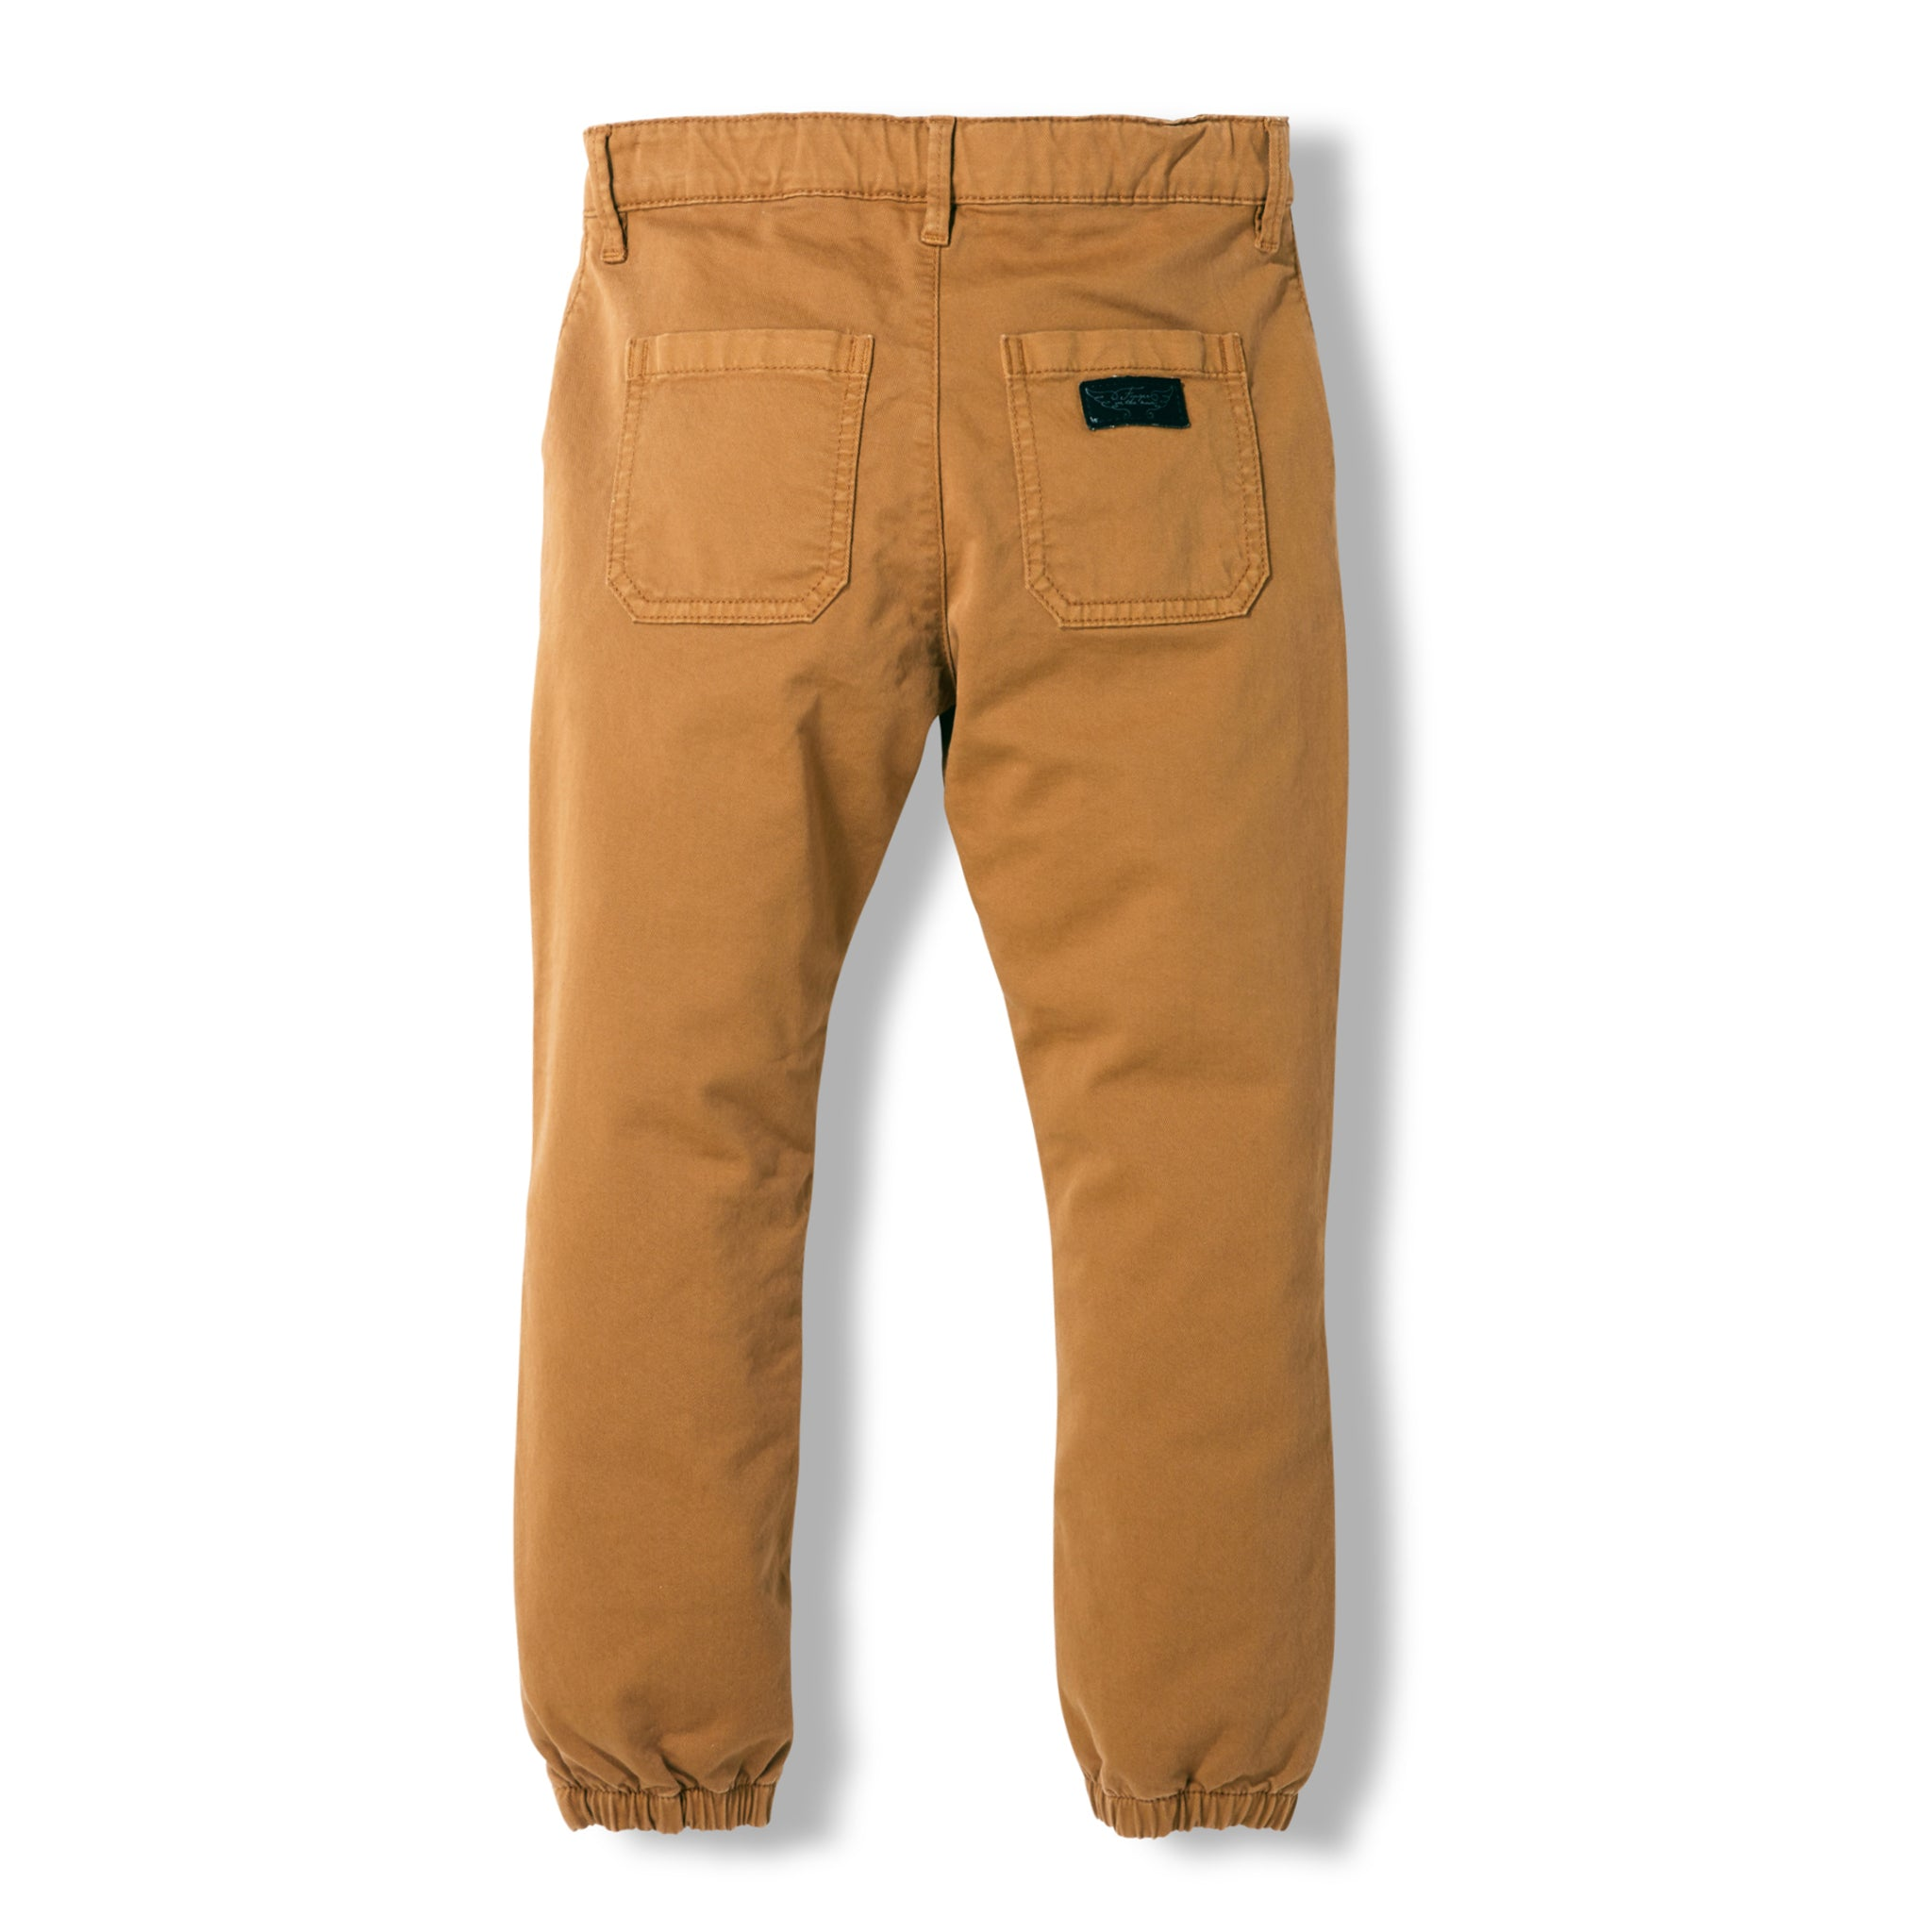 SKATER Caramel -  Woven Elasticed Bottom Chino Fit Pants 4